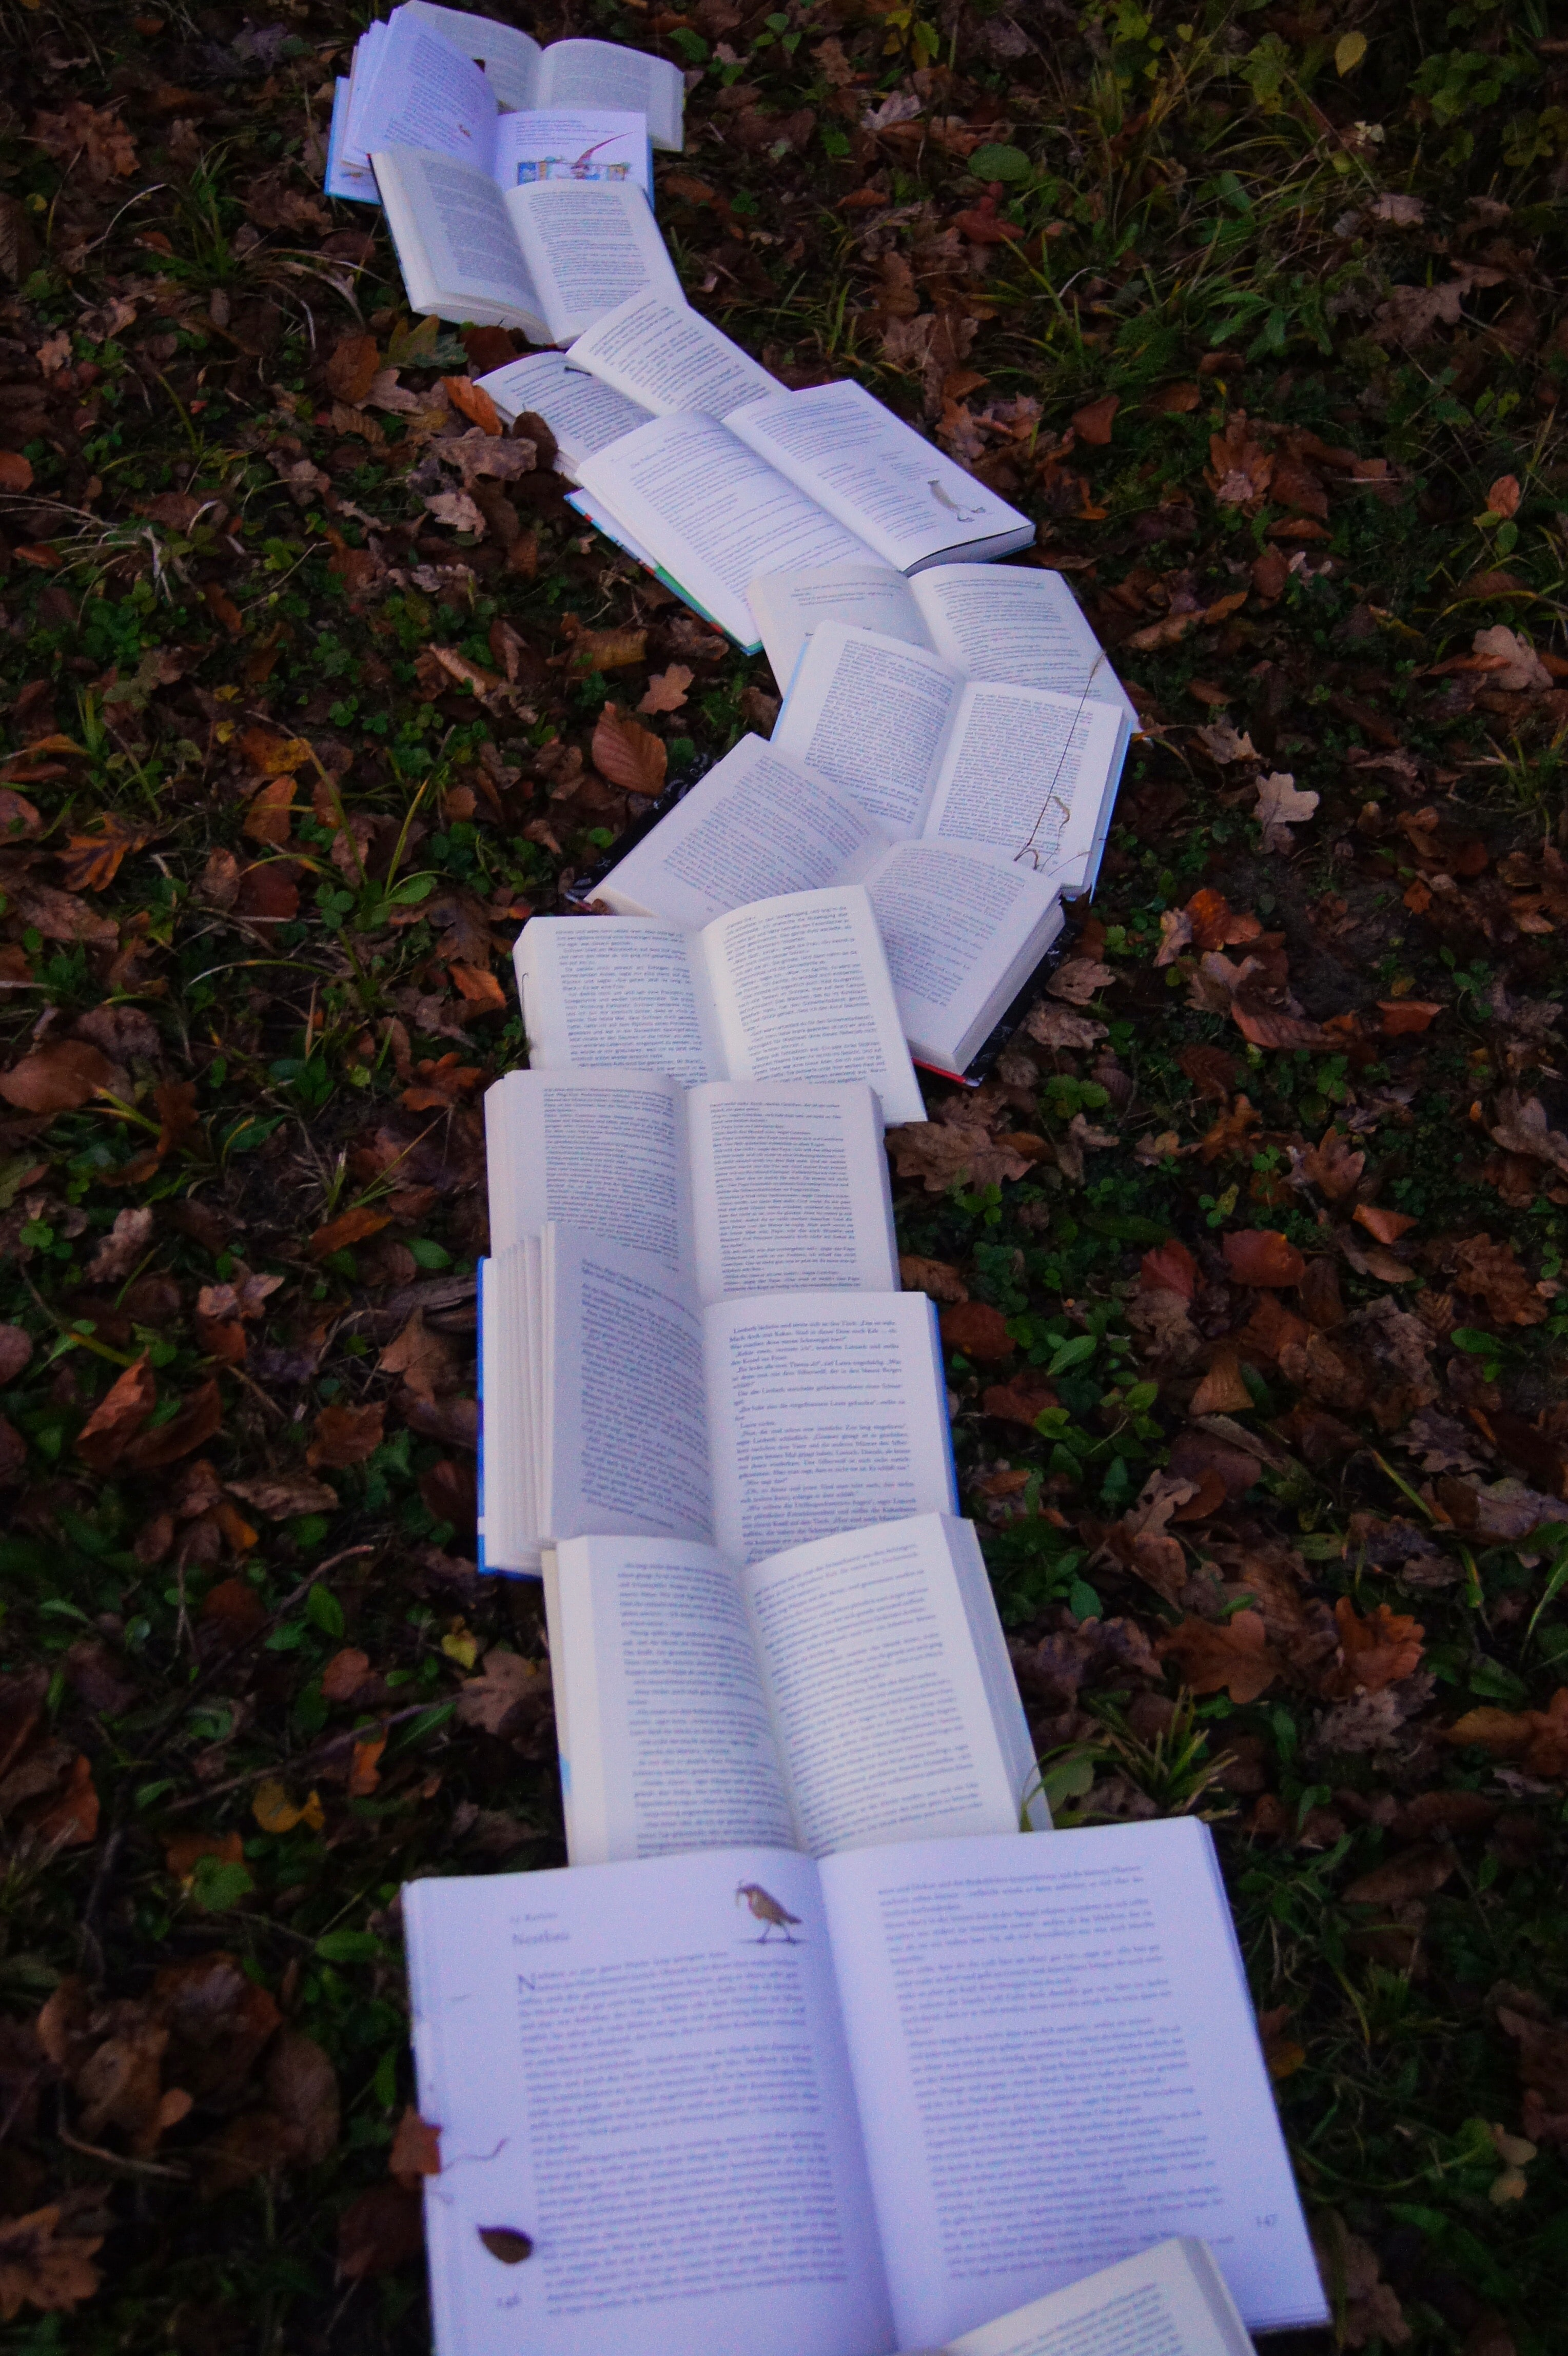 Books laid open in the grass forming a path